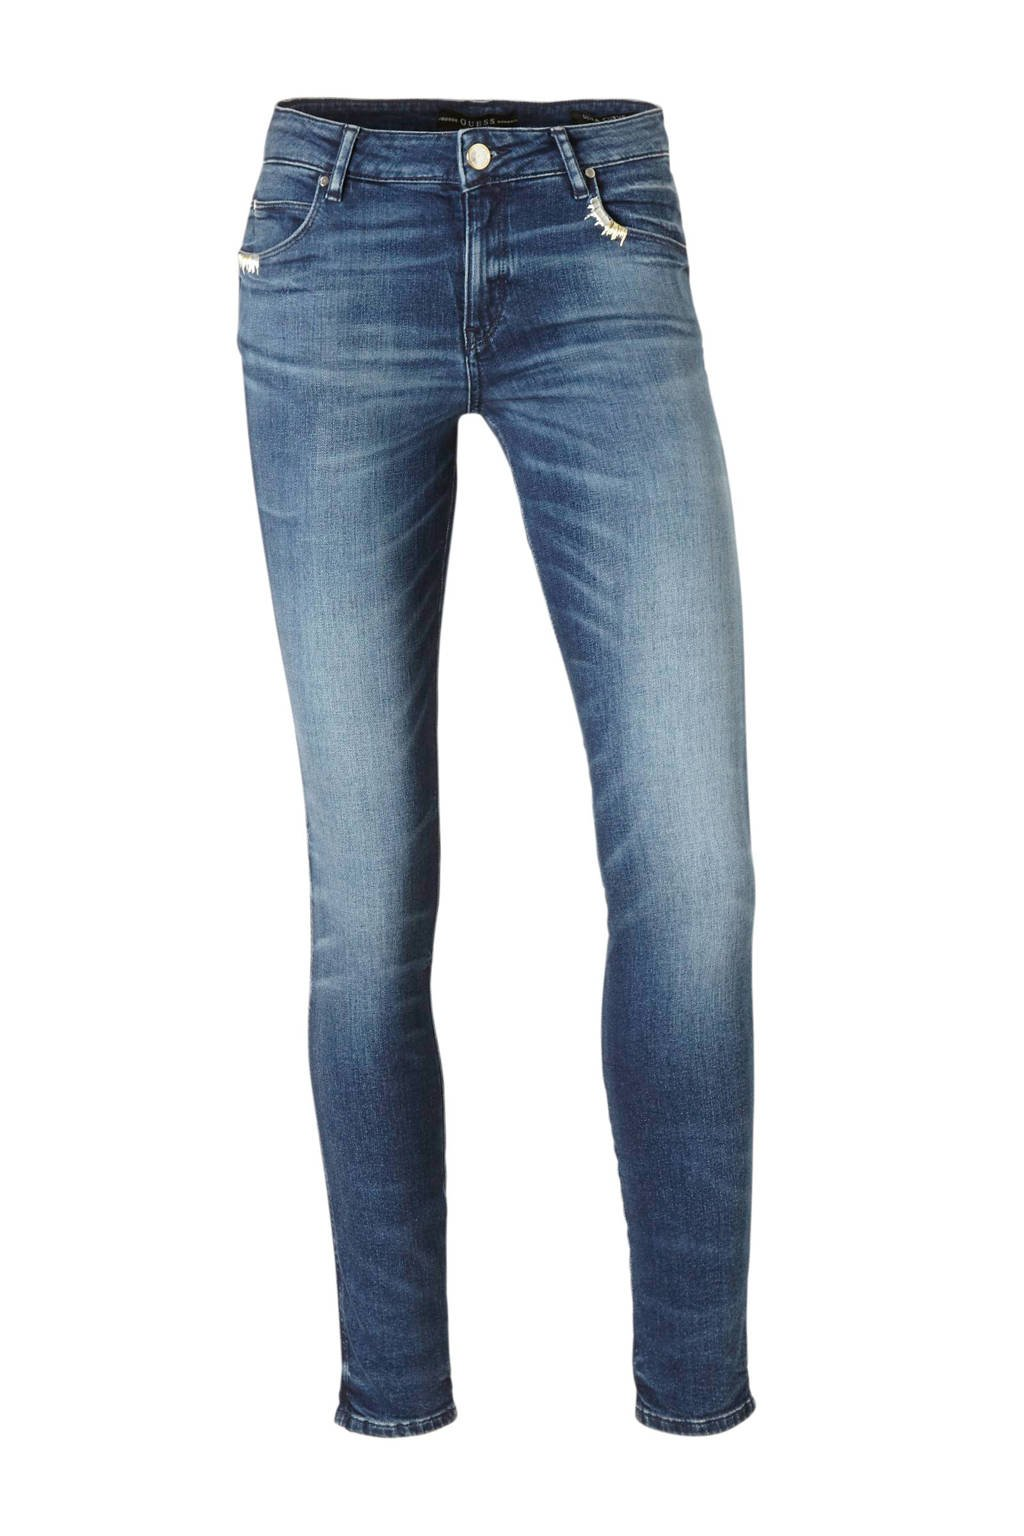 GUESS slim fit jeans, Blauw